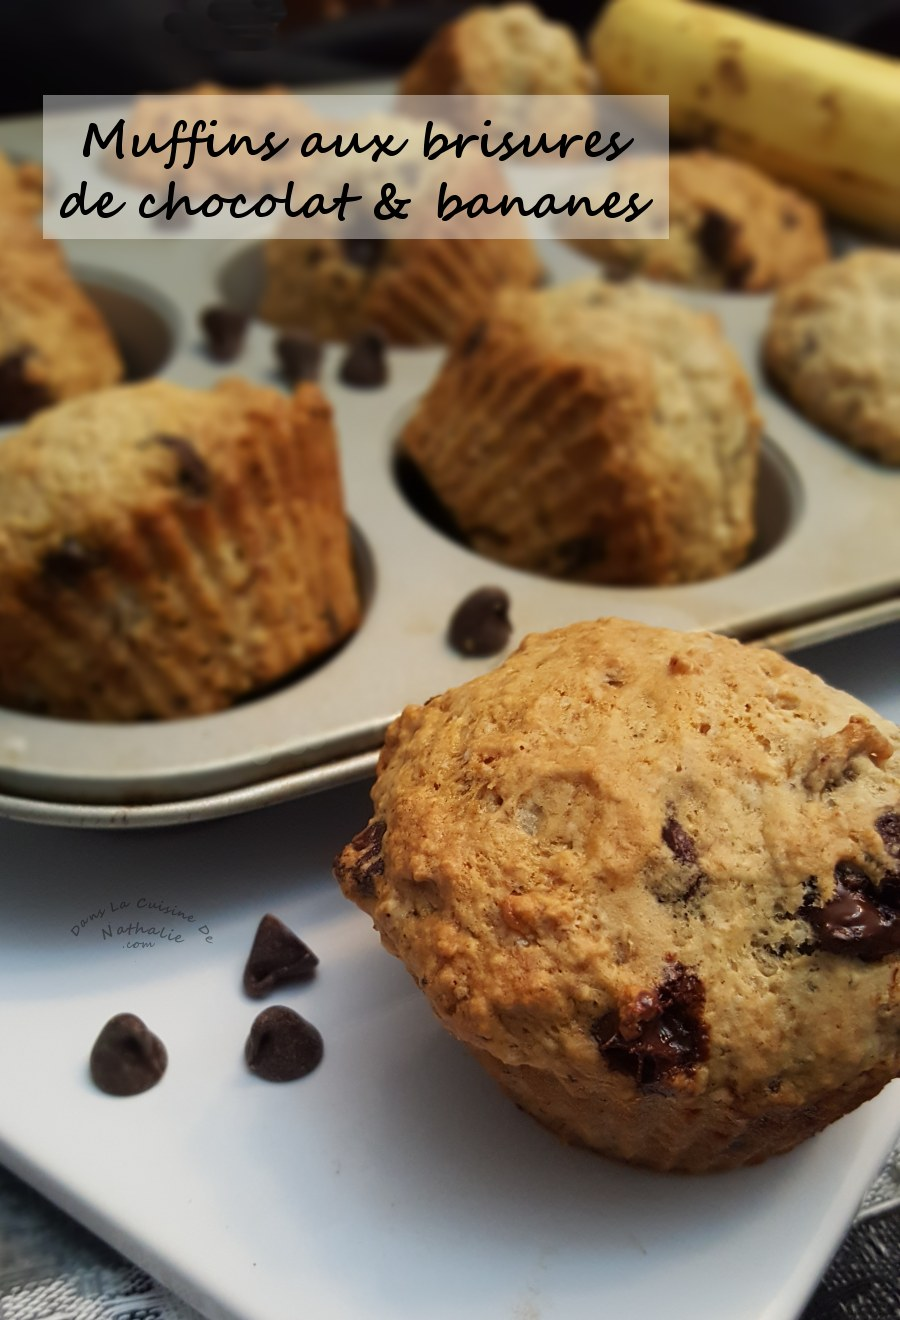 Muffins gourmands aux brisures de chocolat